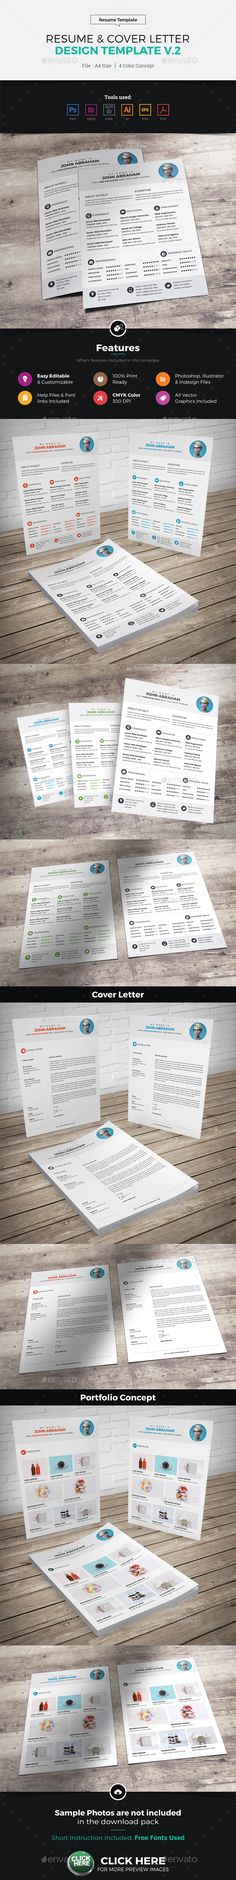 Free Clean Dark Resume Mockup (AI Mockup and Dark